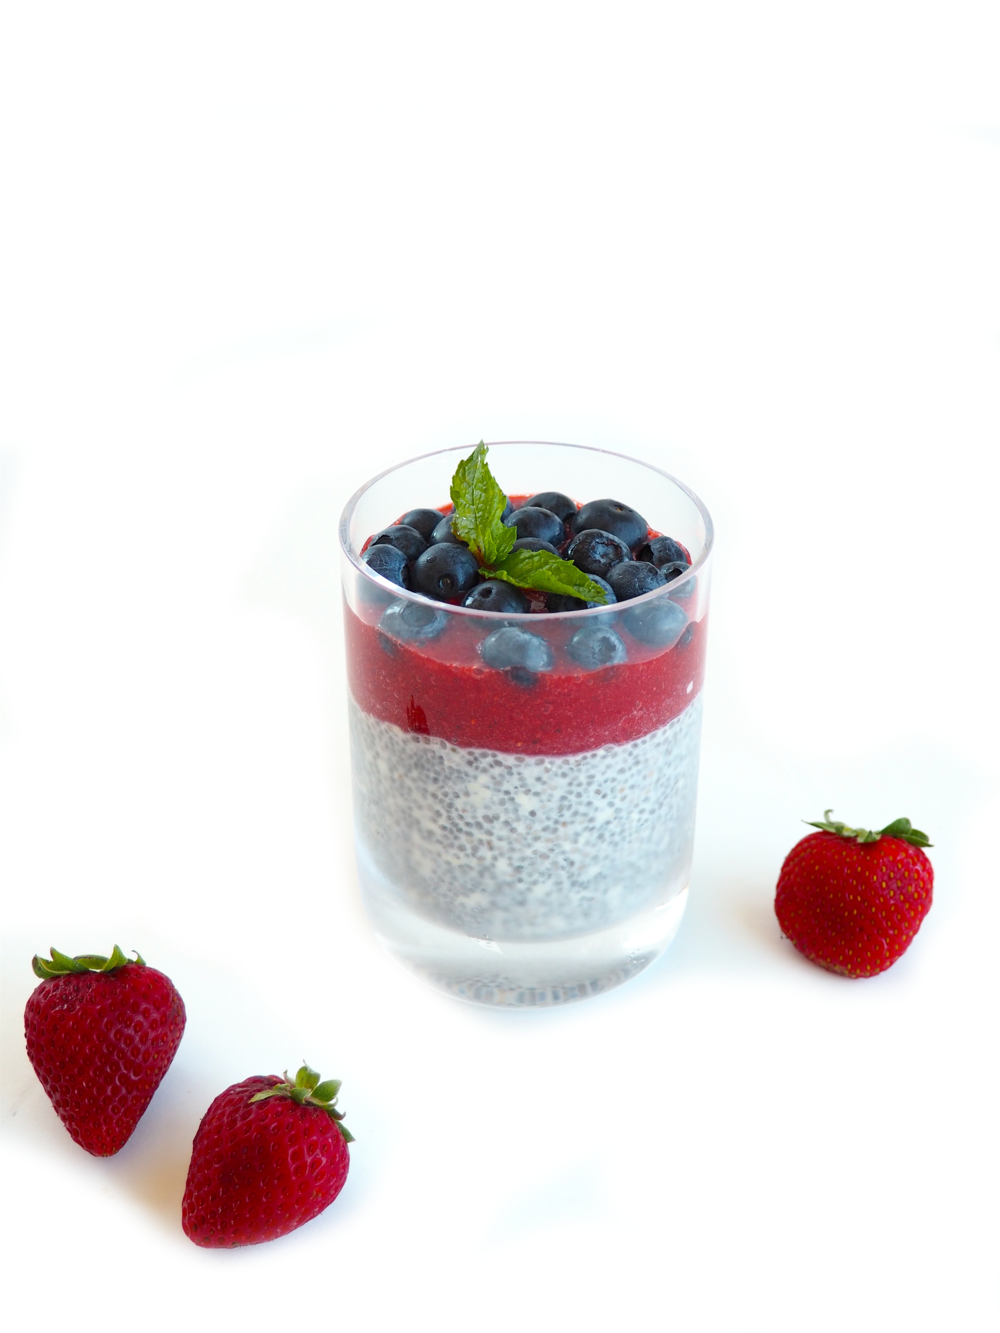 Chia Seed Pudding with Strawberry Mint Puree Blueberries_2